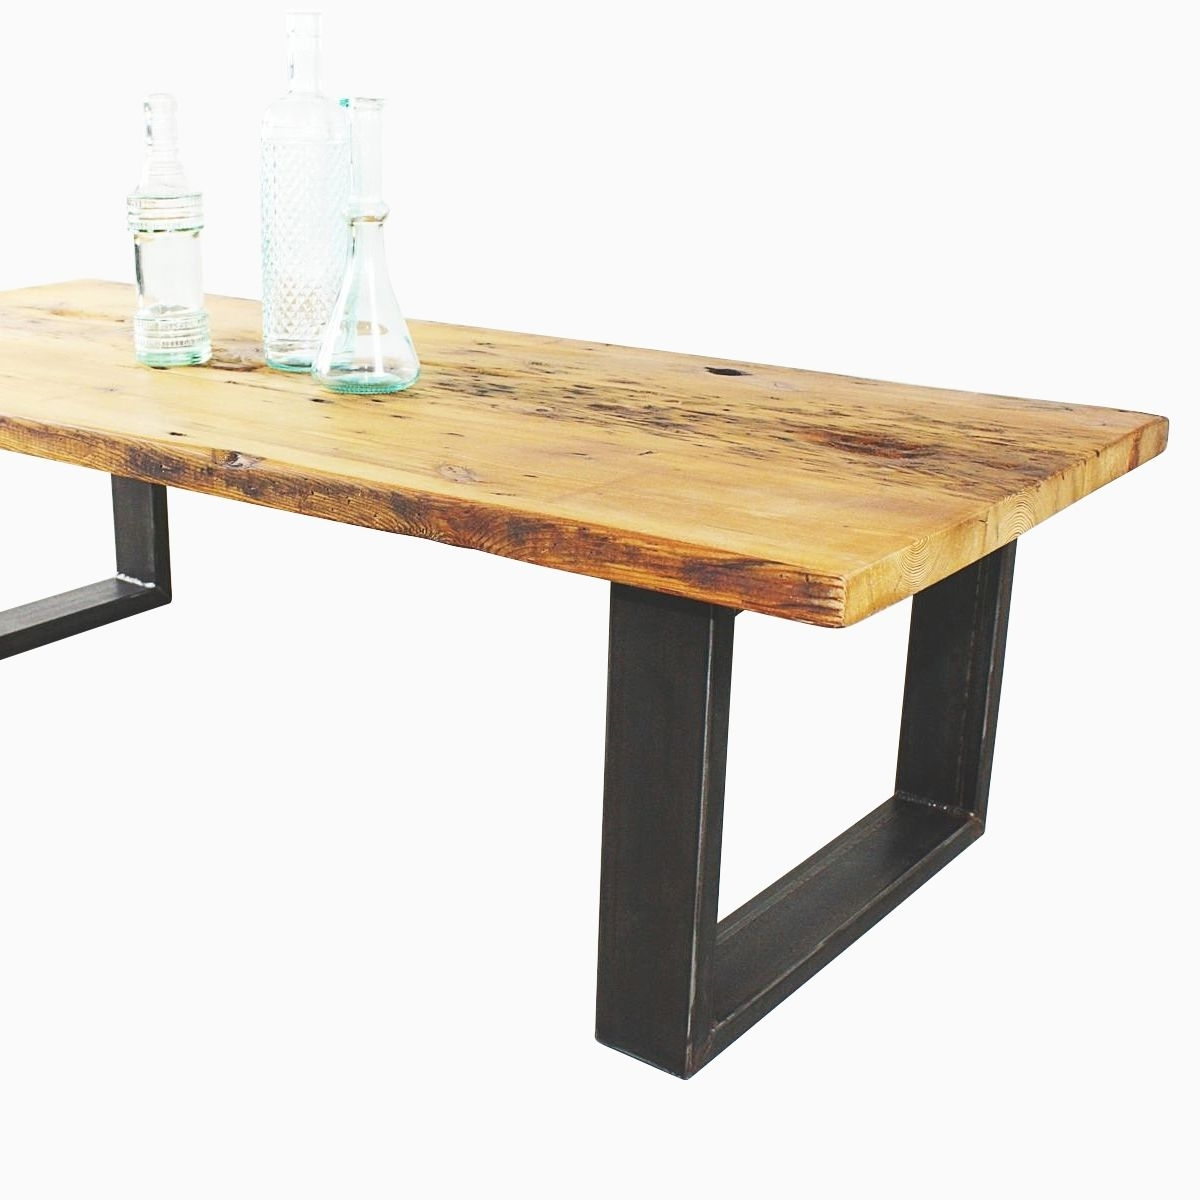 Trendy Reclaimed Pine & Iron Coffee Tables Intended For Buy A Hand Made Reclaimed Pine Coffee Table, Made To Order From What (View 3 of 20)